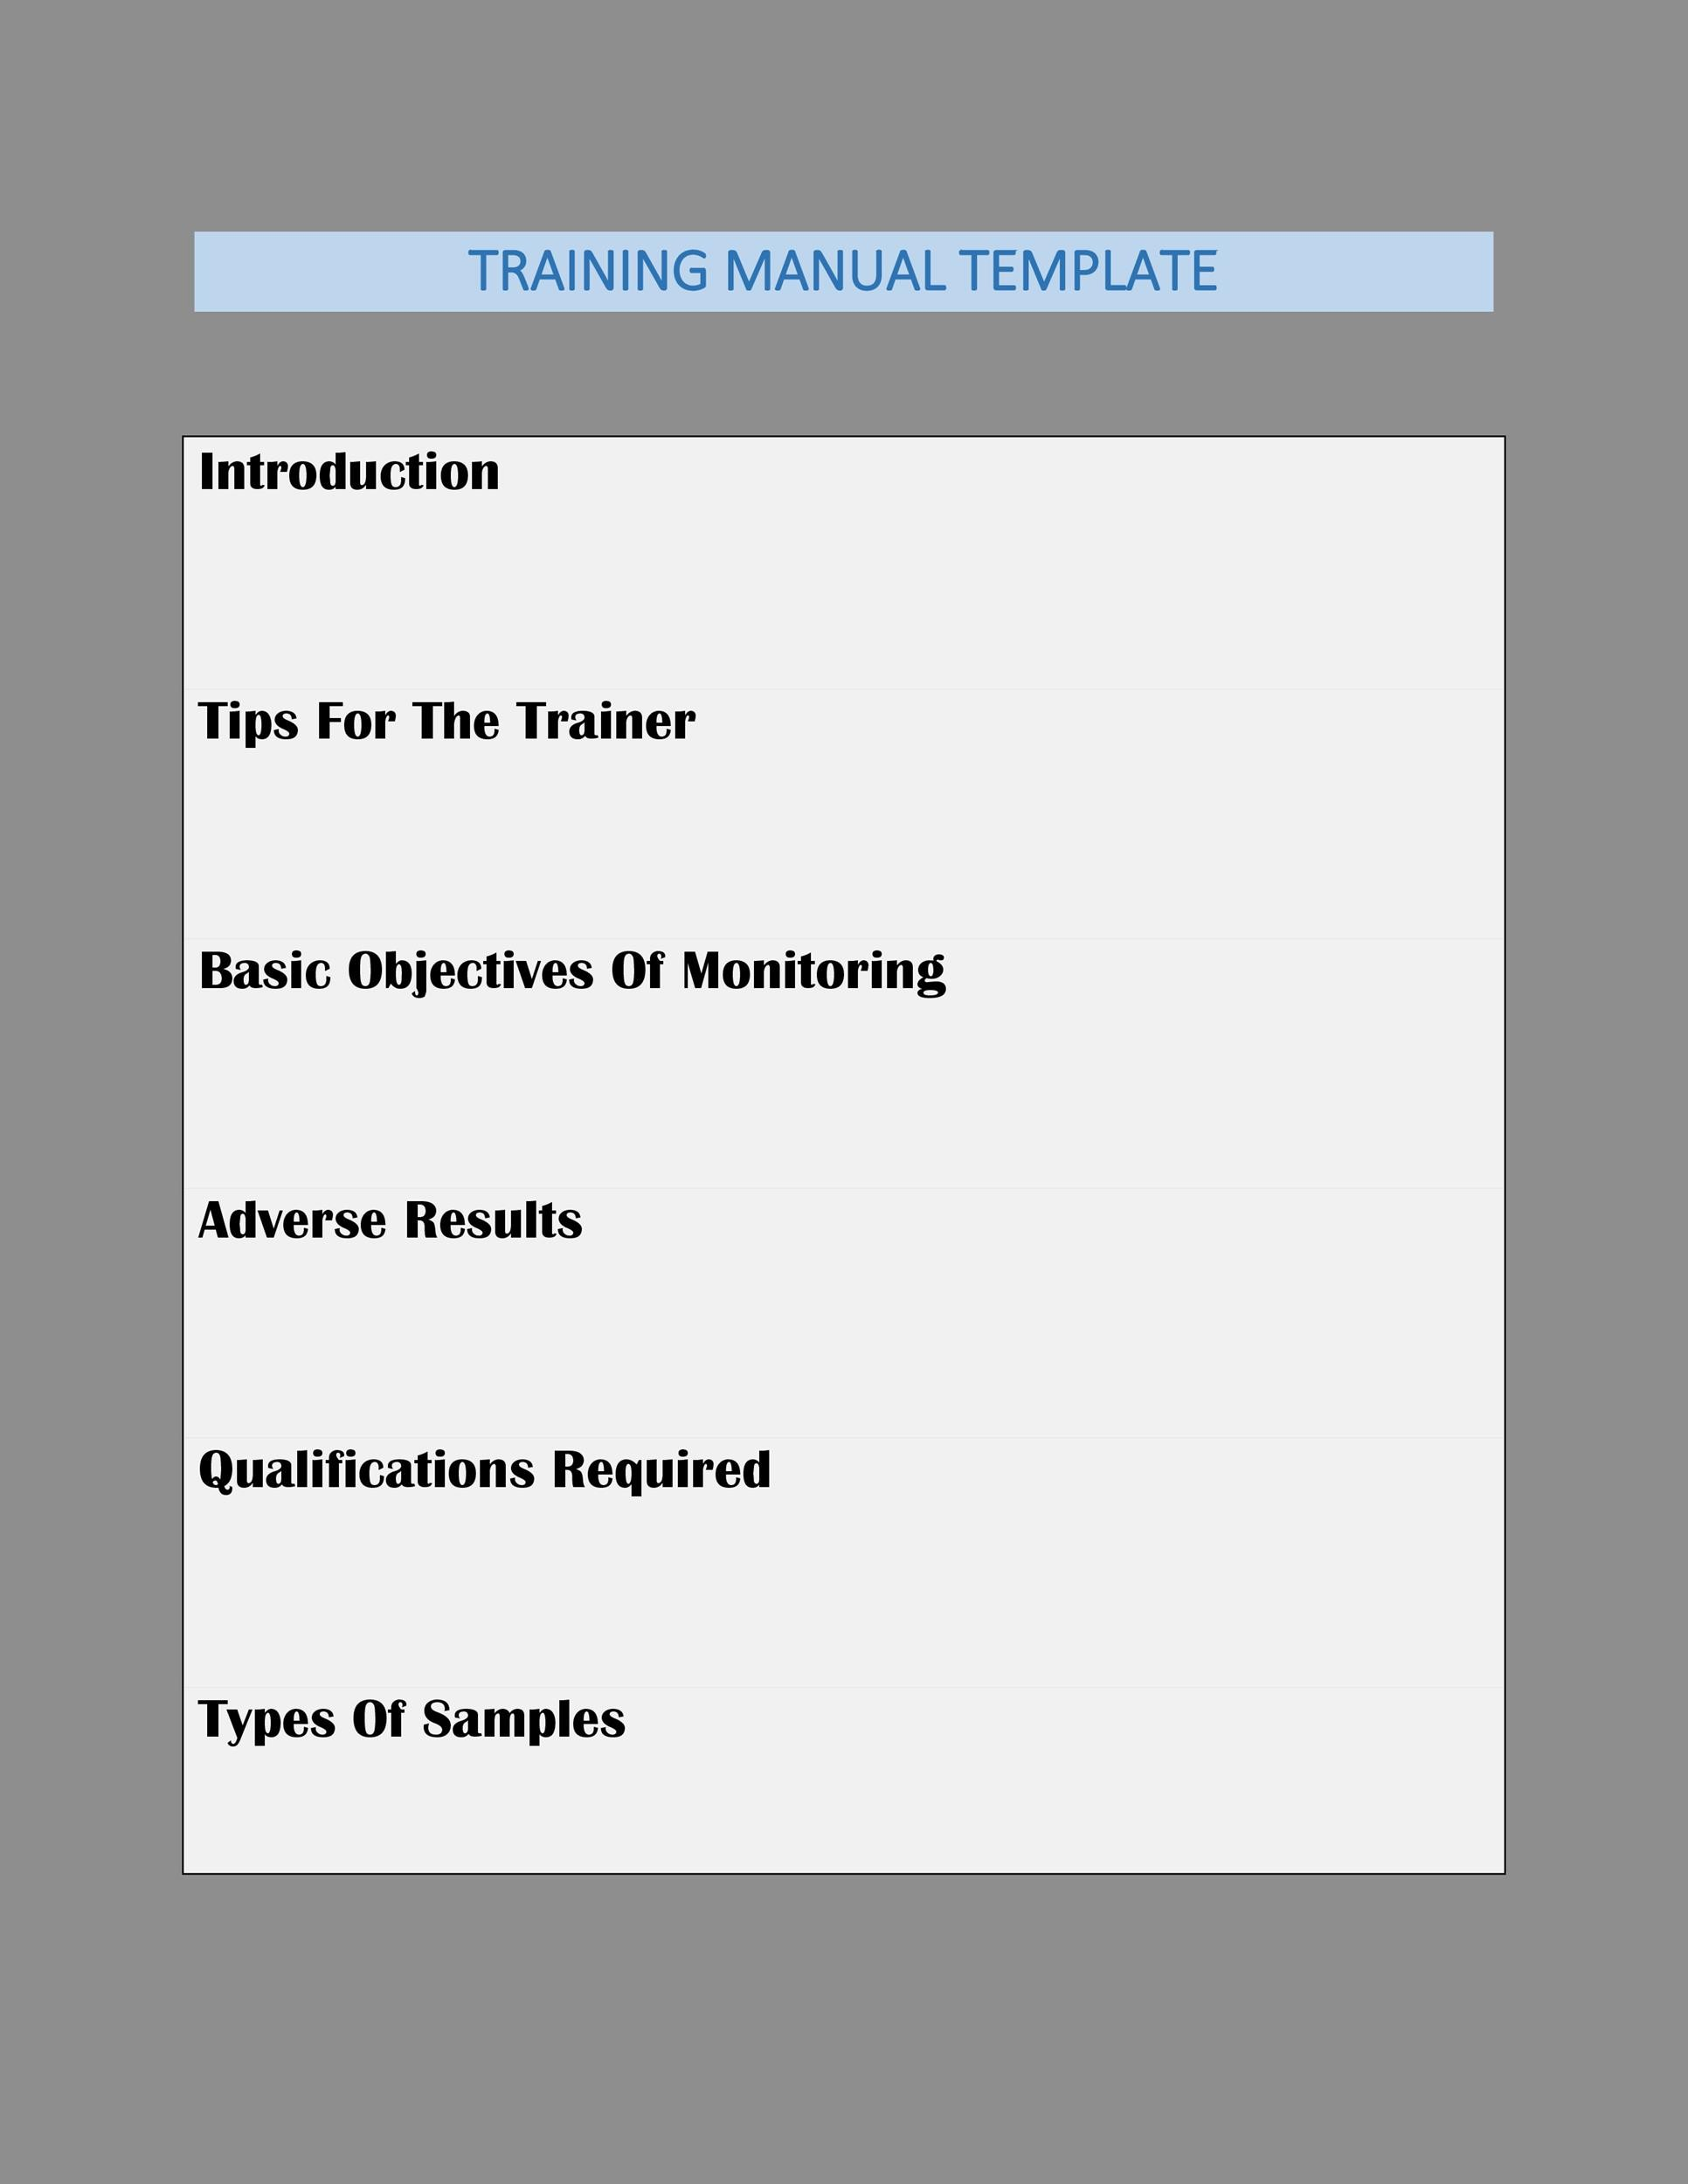 Training Manual - 40+ Free Templates  Examples in MS Word - sample training manual template